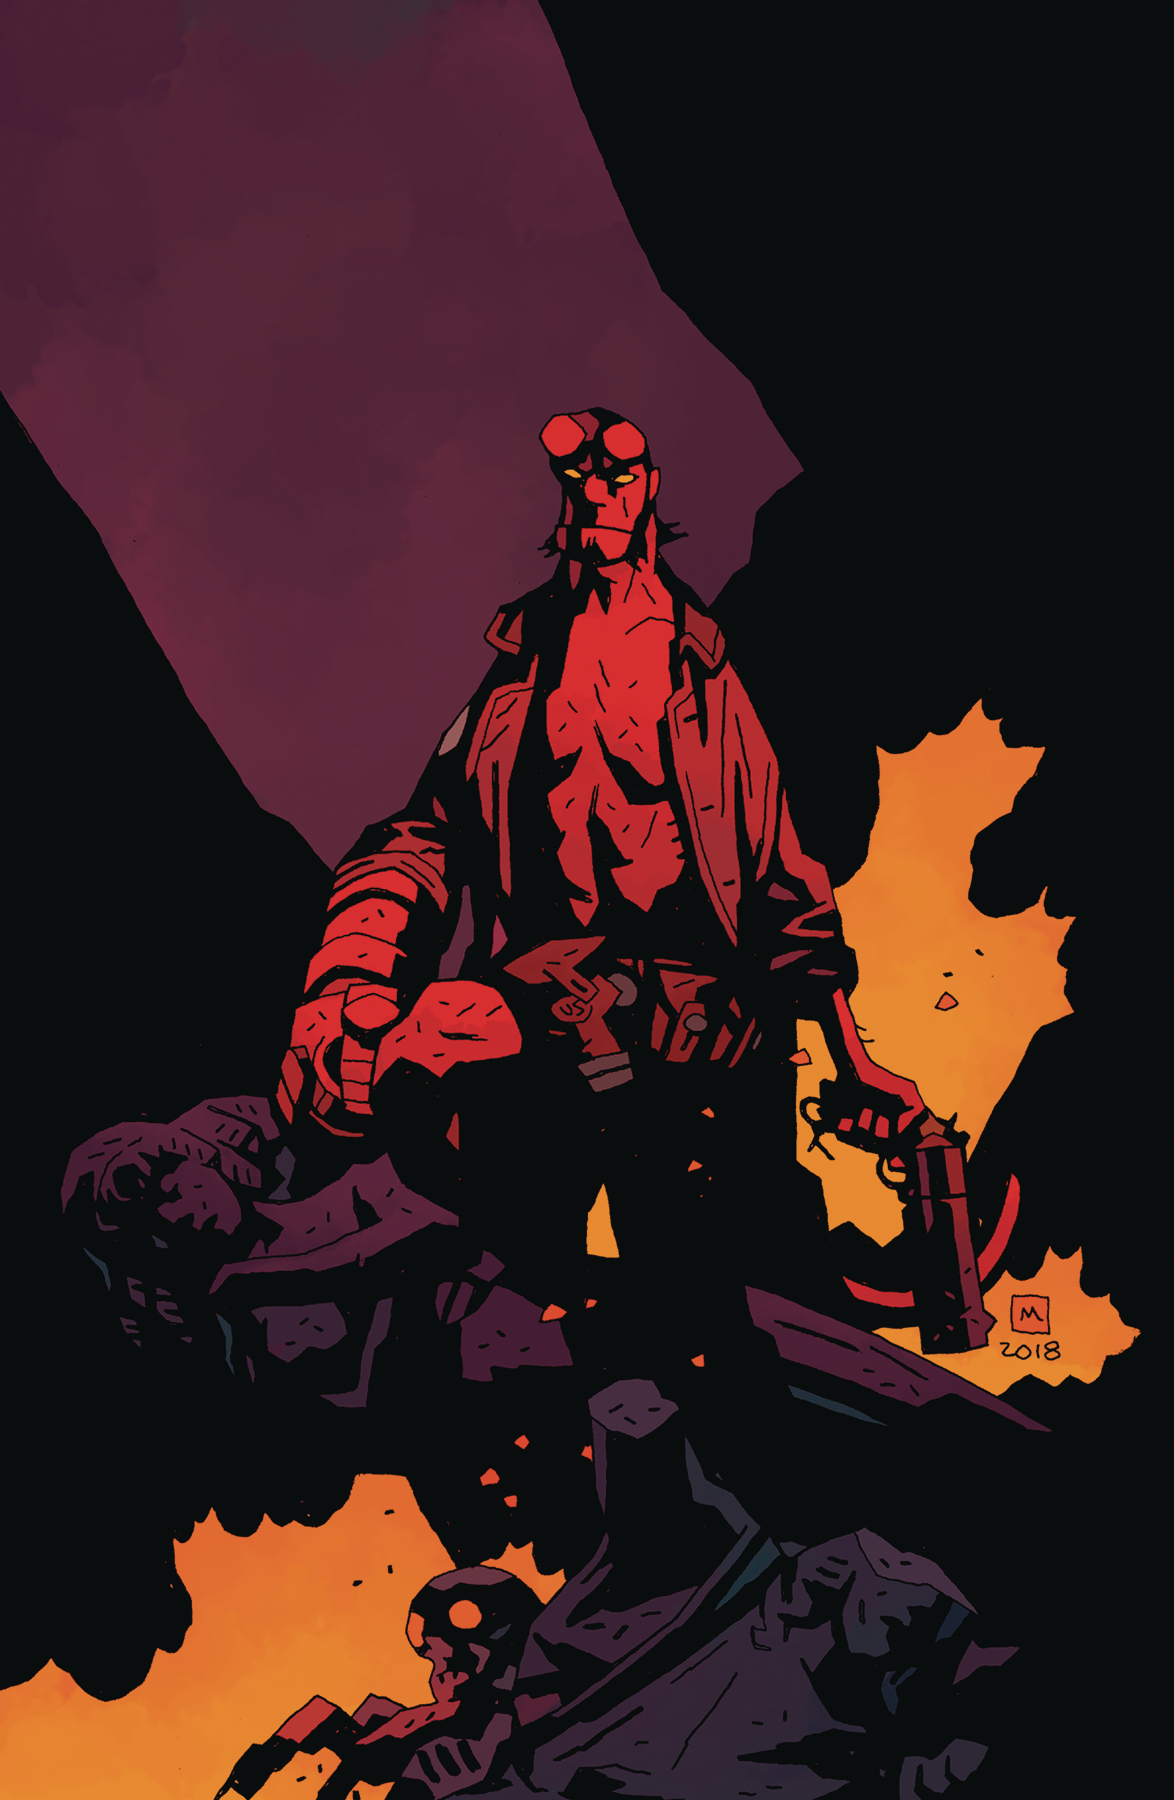 HELLBOY DAY 2019 SEED OF DESTRUCTION (BUNDLE OF 25)